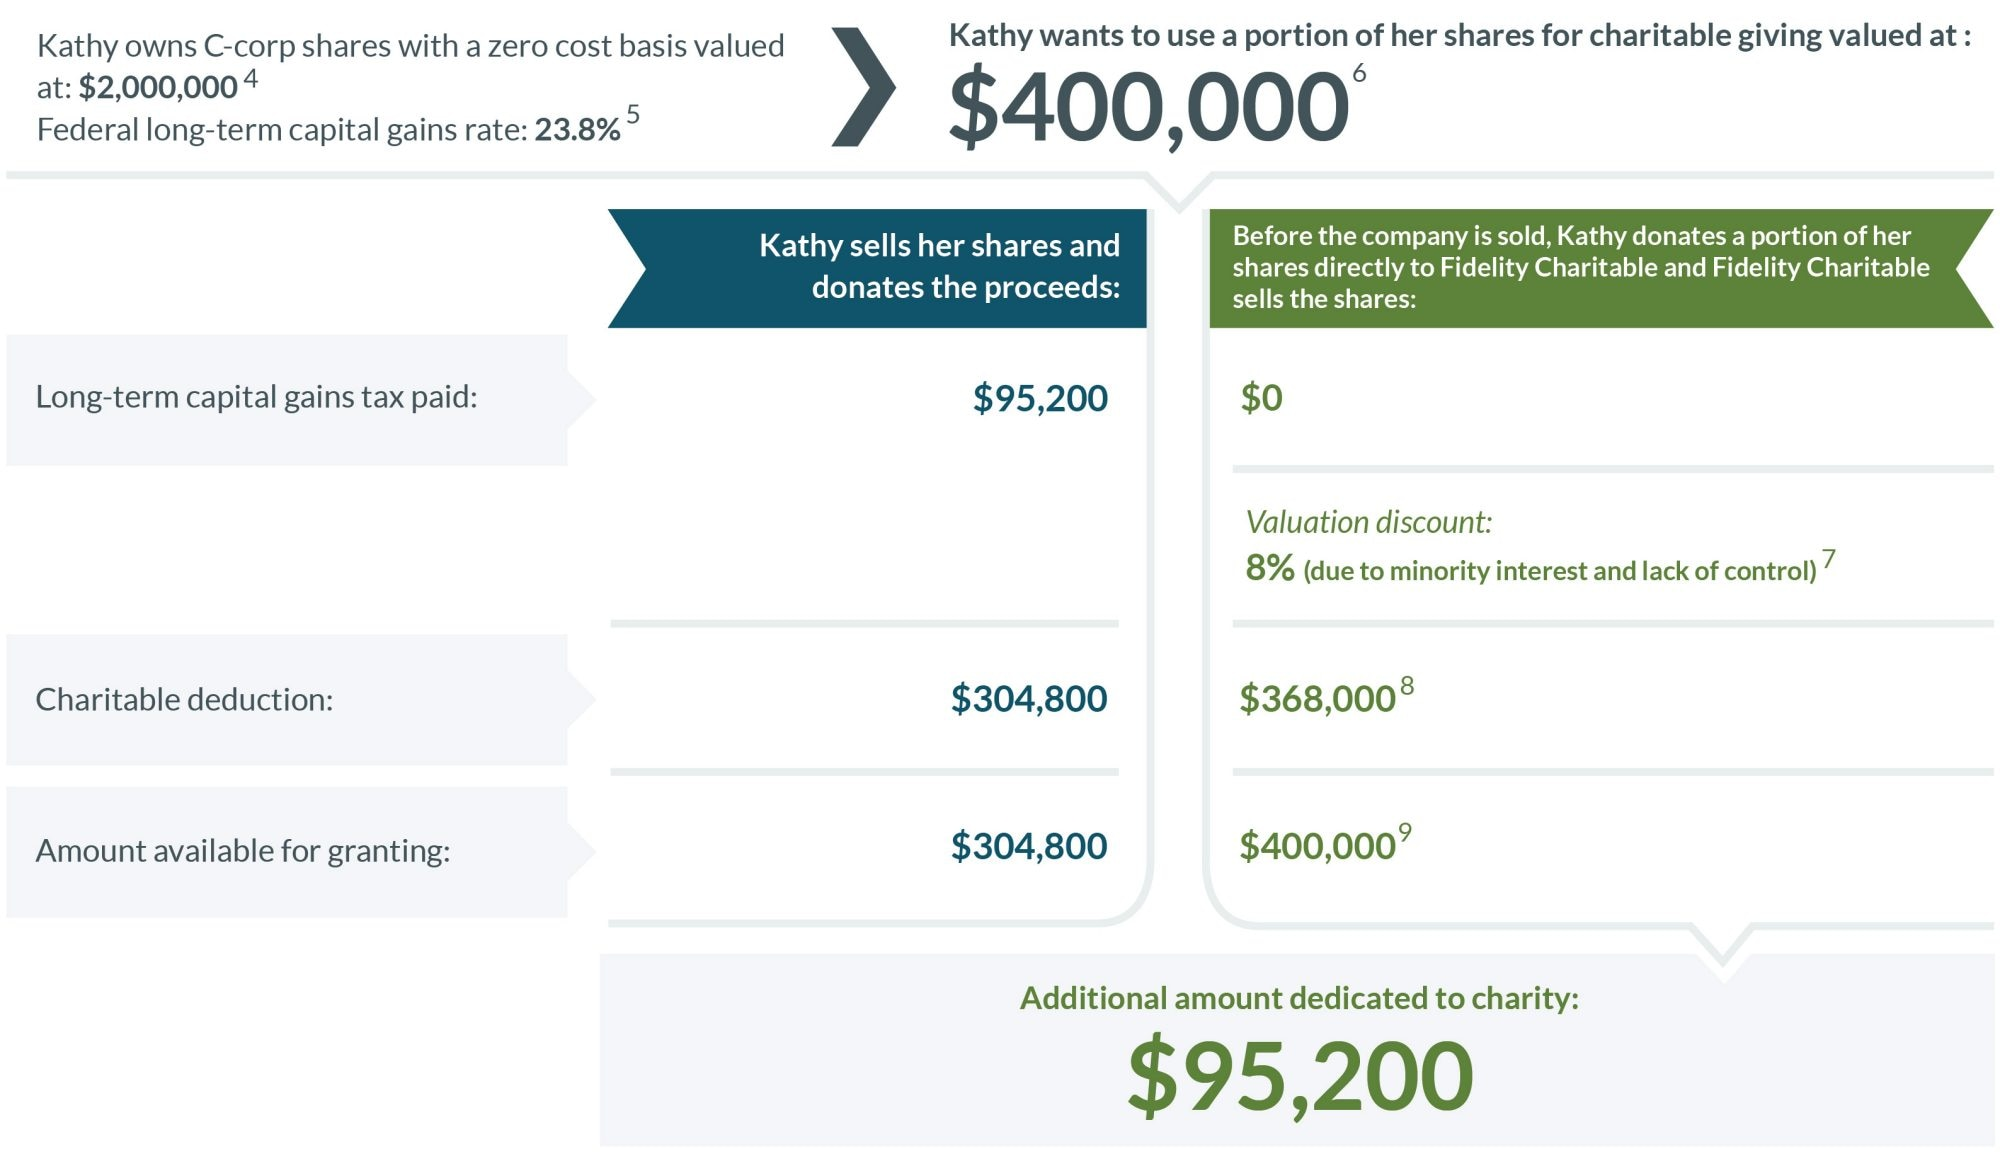 A comparison of donating a portion of private C-corp stock directly to charity versus donating the after-tax proceeds.